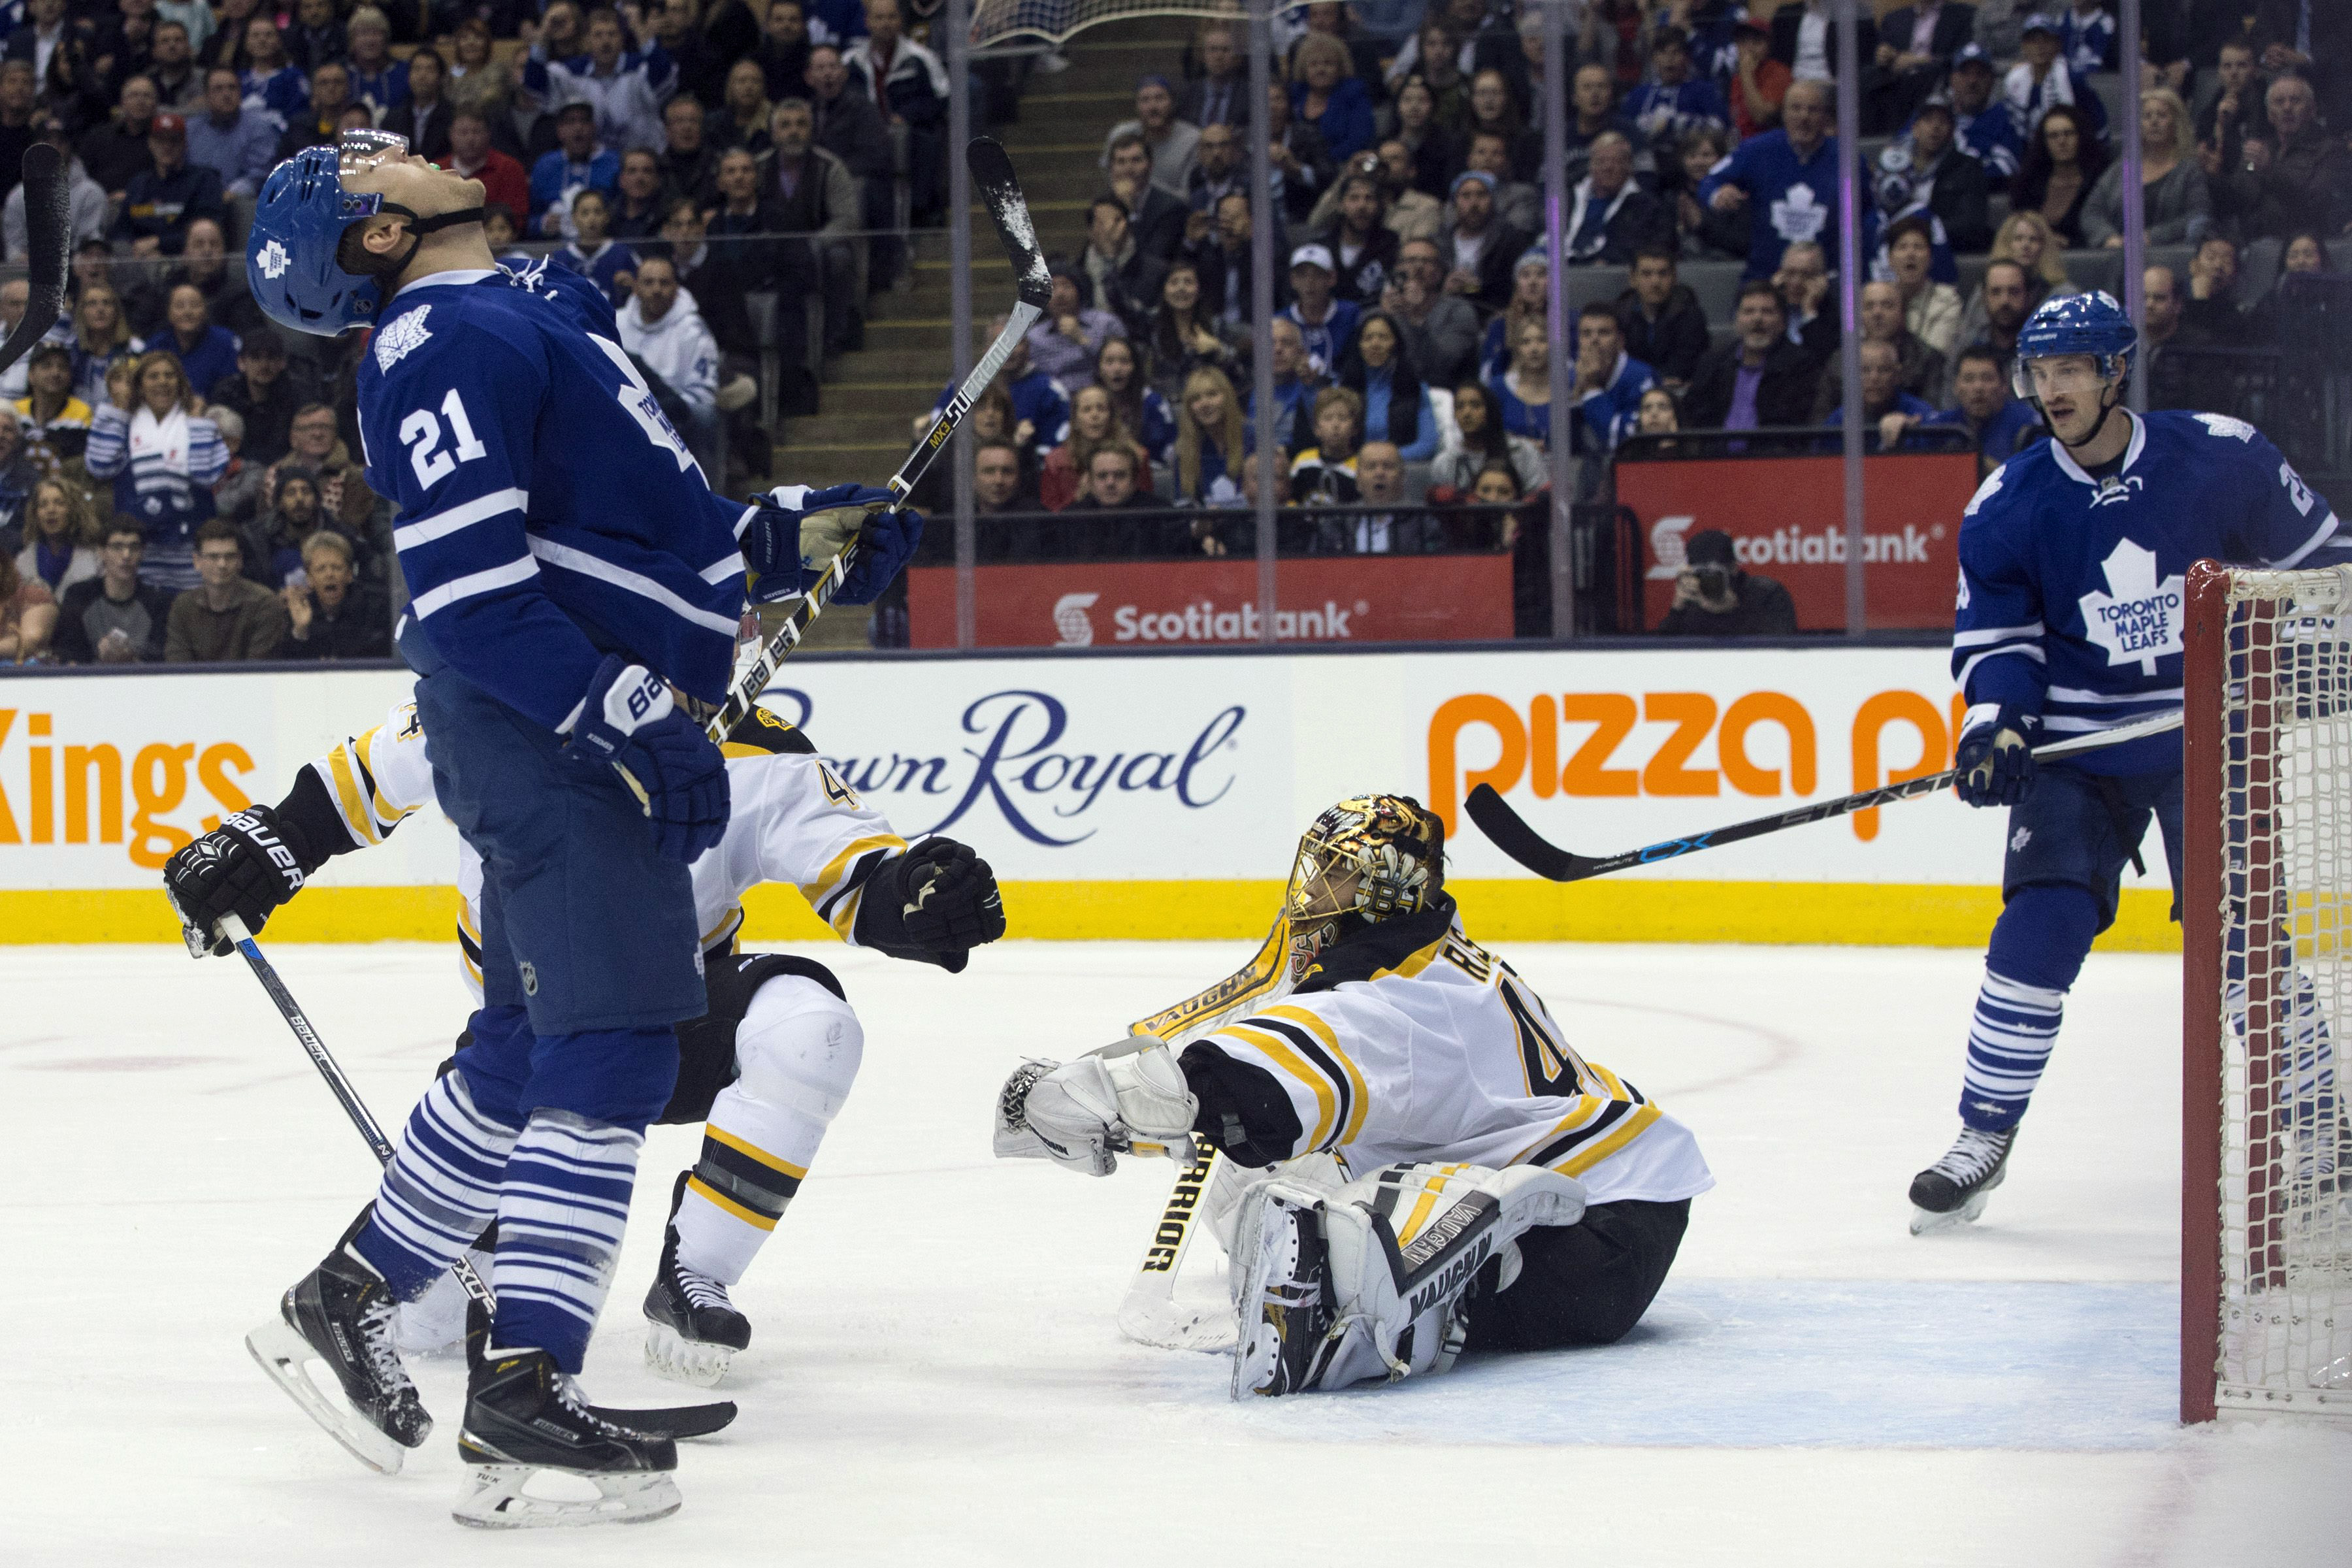 Toronto Maple Leafs James van Riemsdyk, left, reacts after Boston Bruins goaltender Tuuka Rask makes a save at the end of overtime in an NHL hockey game in Toronto on Monday, Nov. 23, 2015. (Chris Young/The Canadian Press via AP) MANDATORY CREDIT